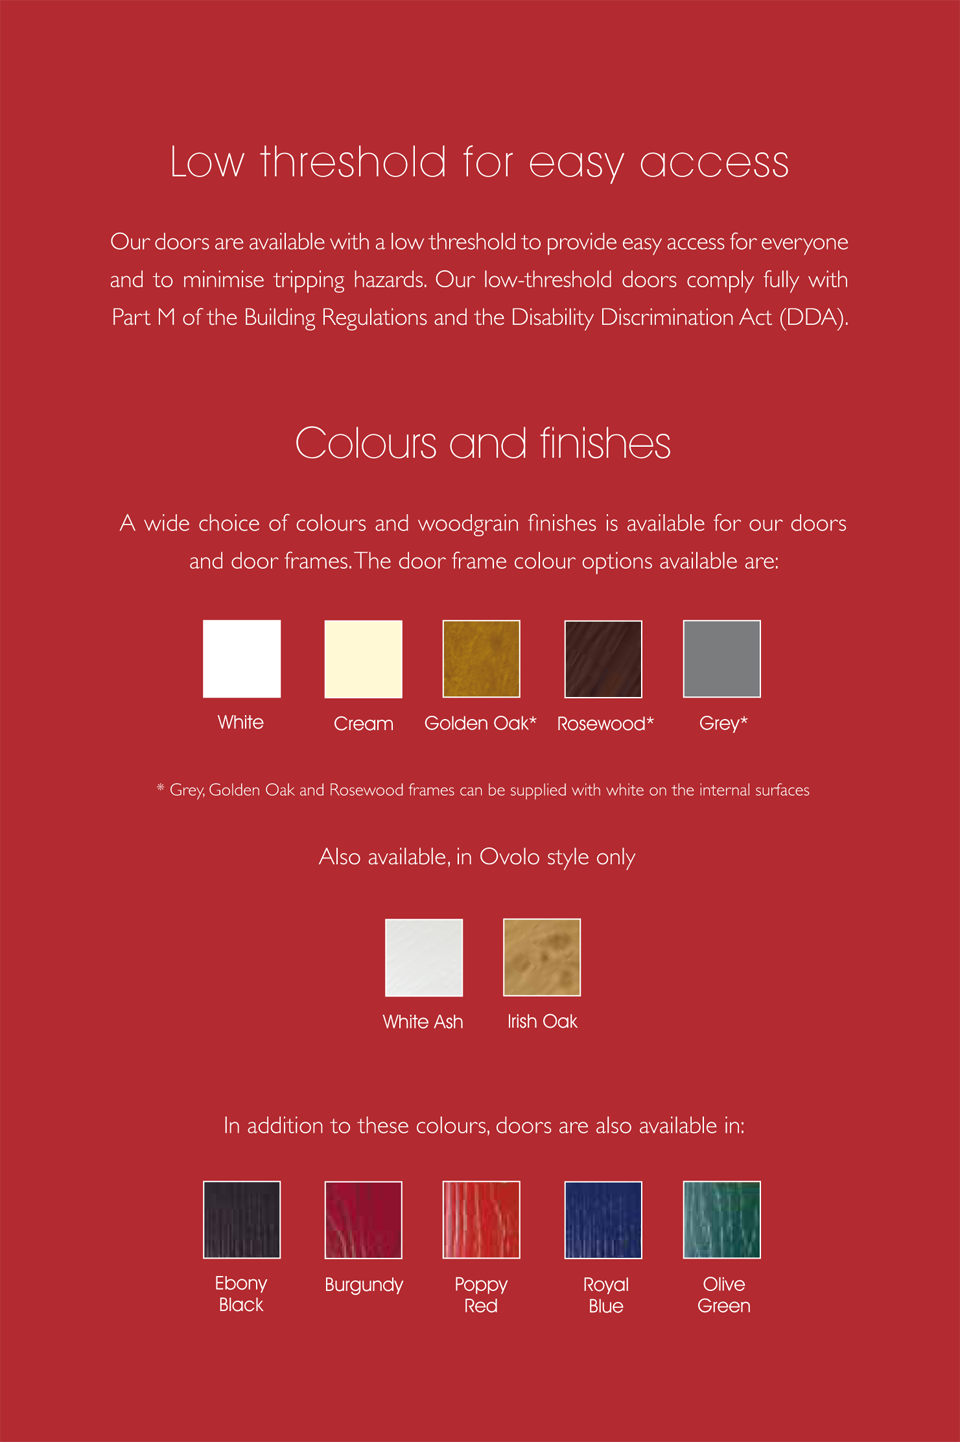 Door Colours and Finishes